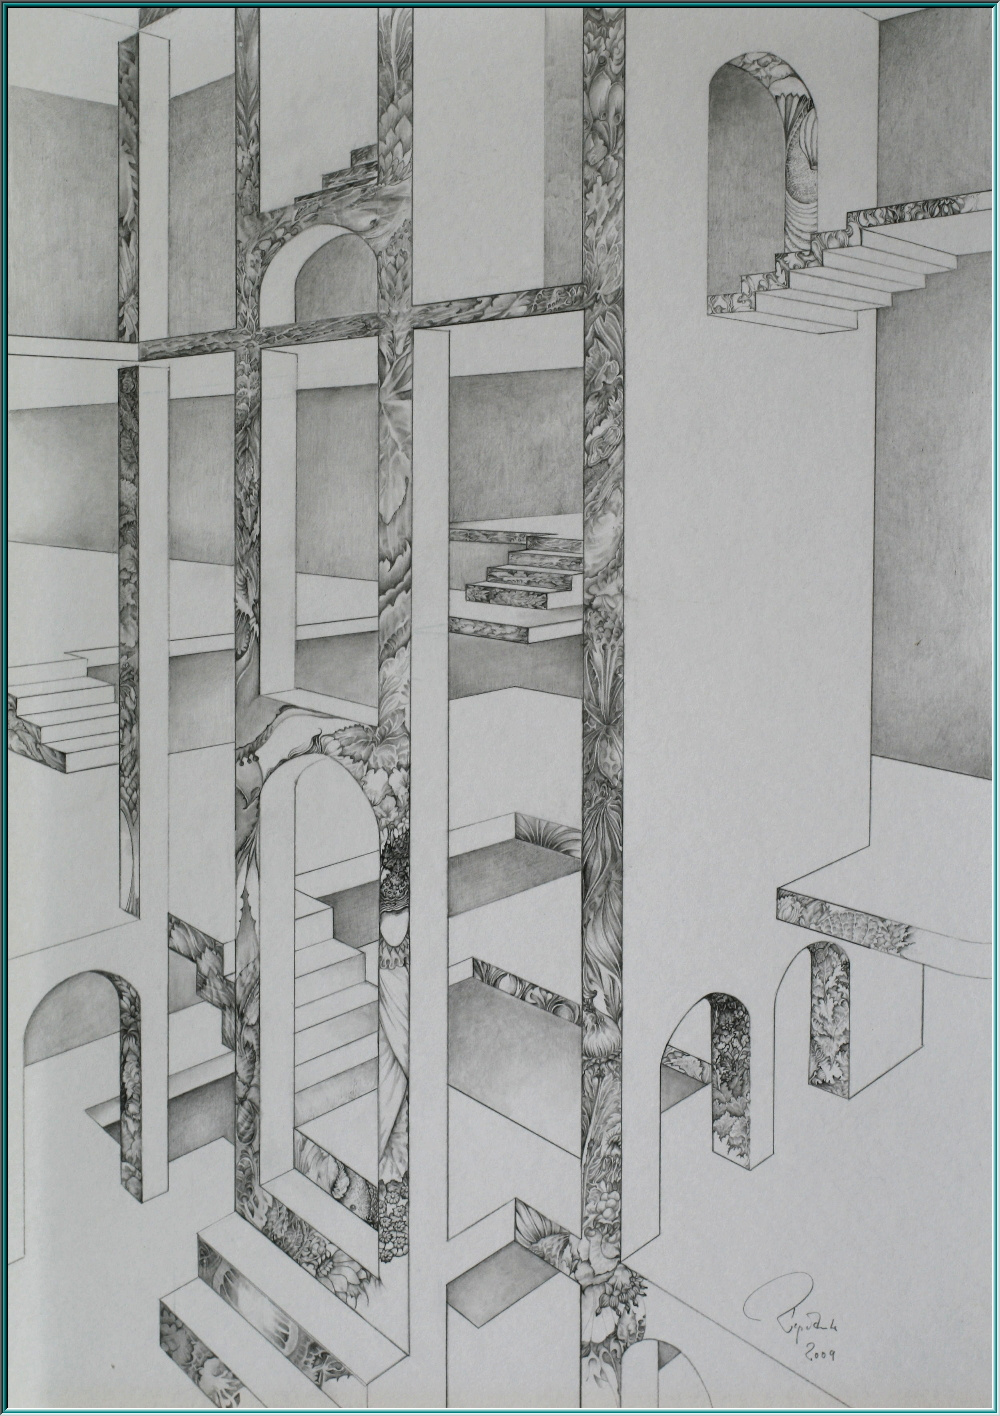 M.C.Escher, palace, theater, drawing, pencil drawing, Baron von Munchausen, Mexican jumping beans, Radiometer